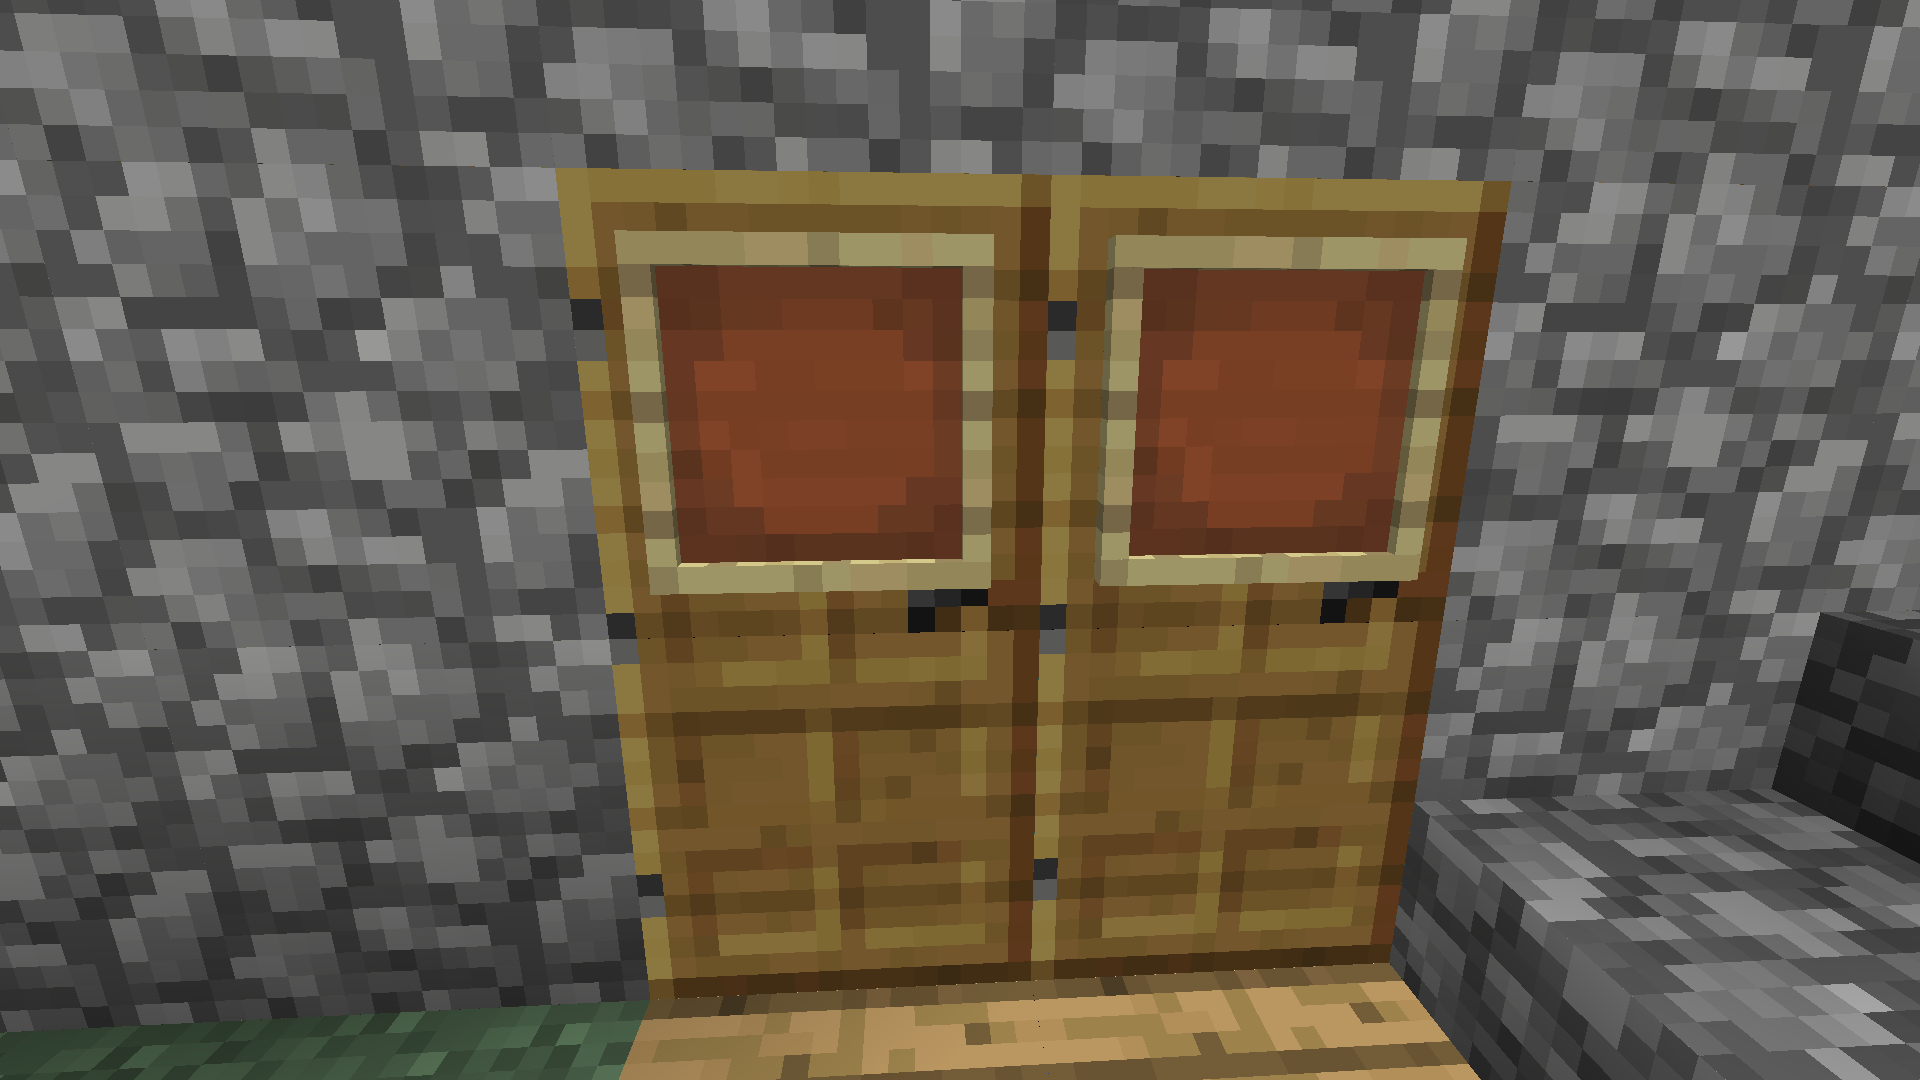 how to make a lever password door in minecraft